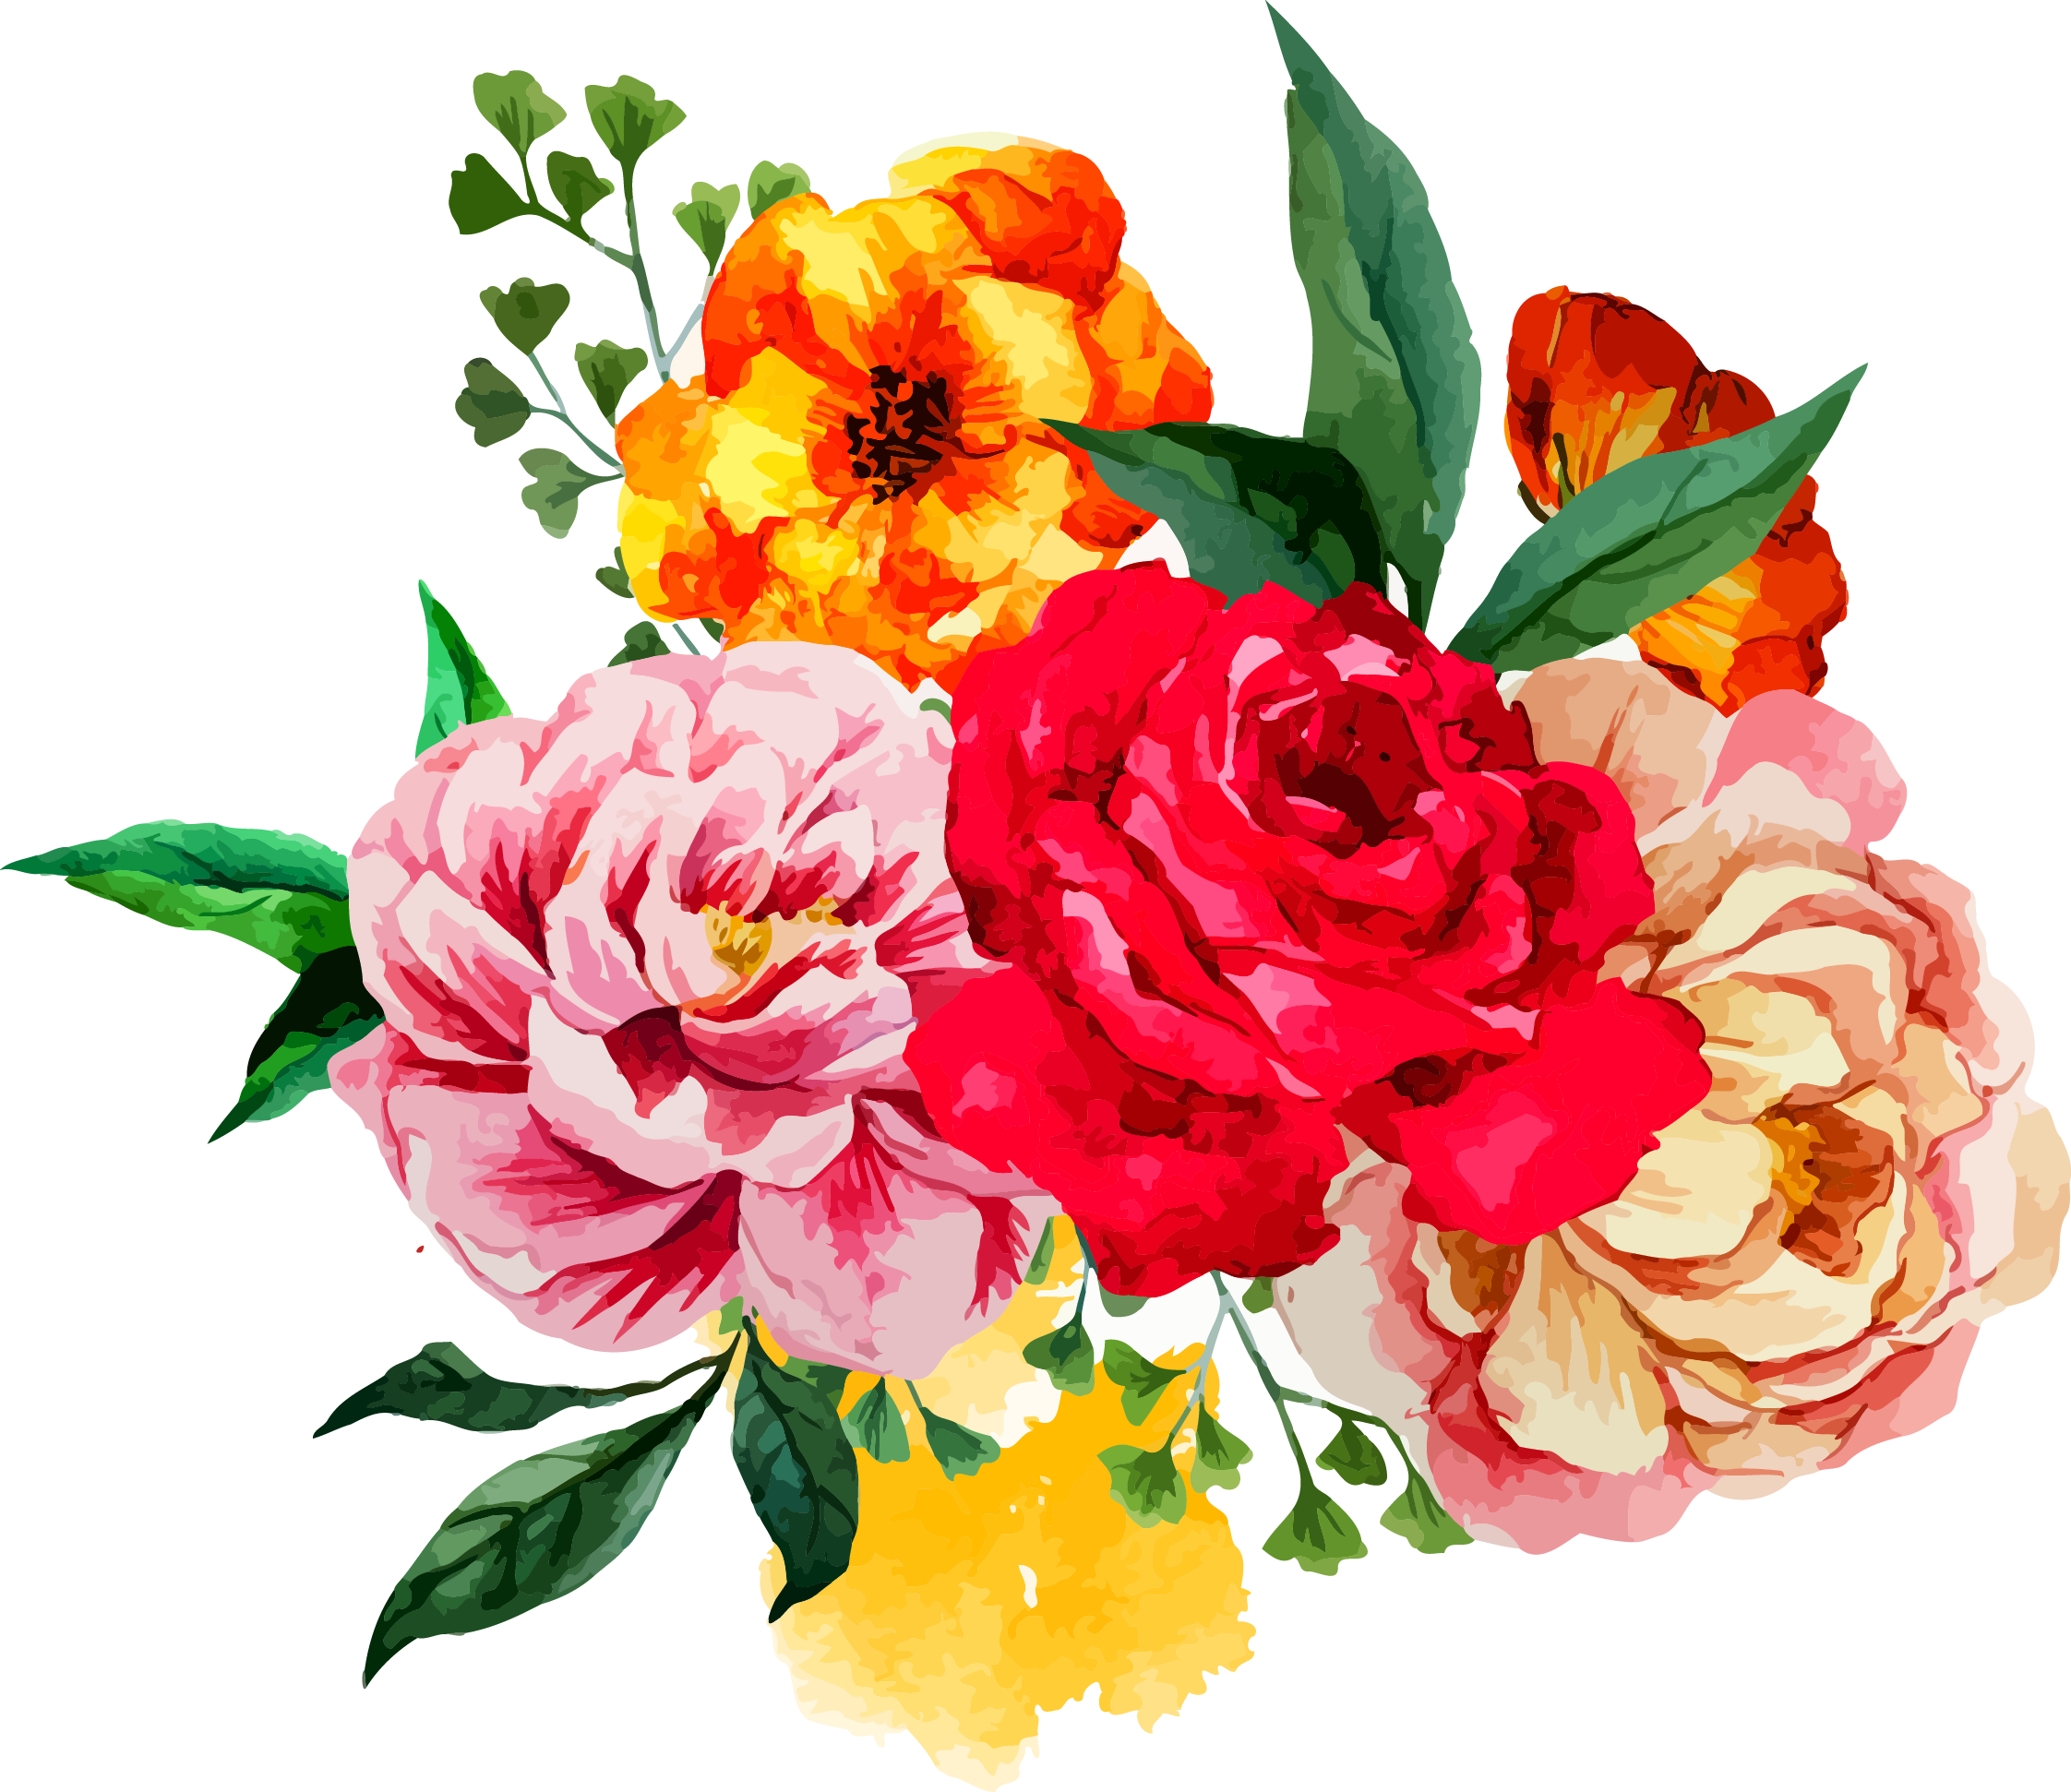 Clipart flower bouquets graphic black and white download Flower bouquet Watercolor painting Clip art - Peony 2244*1942 ... graphic black and white download